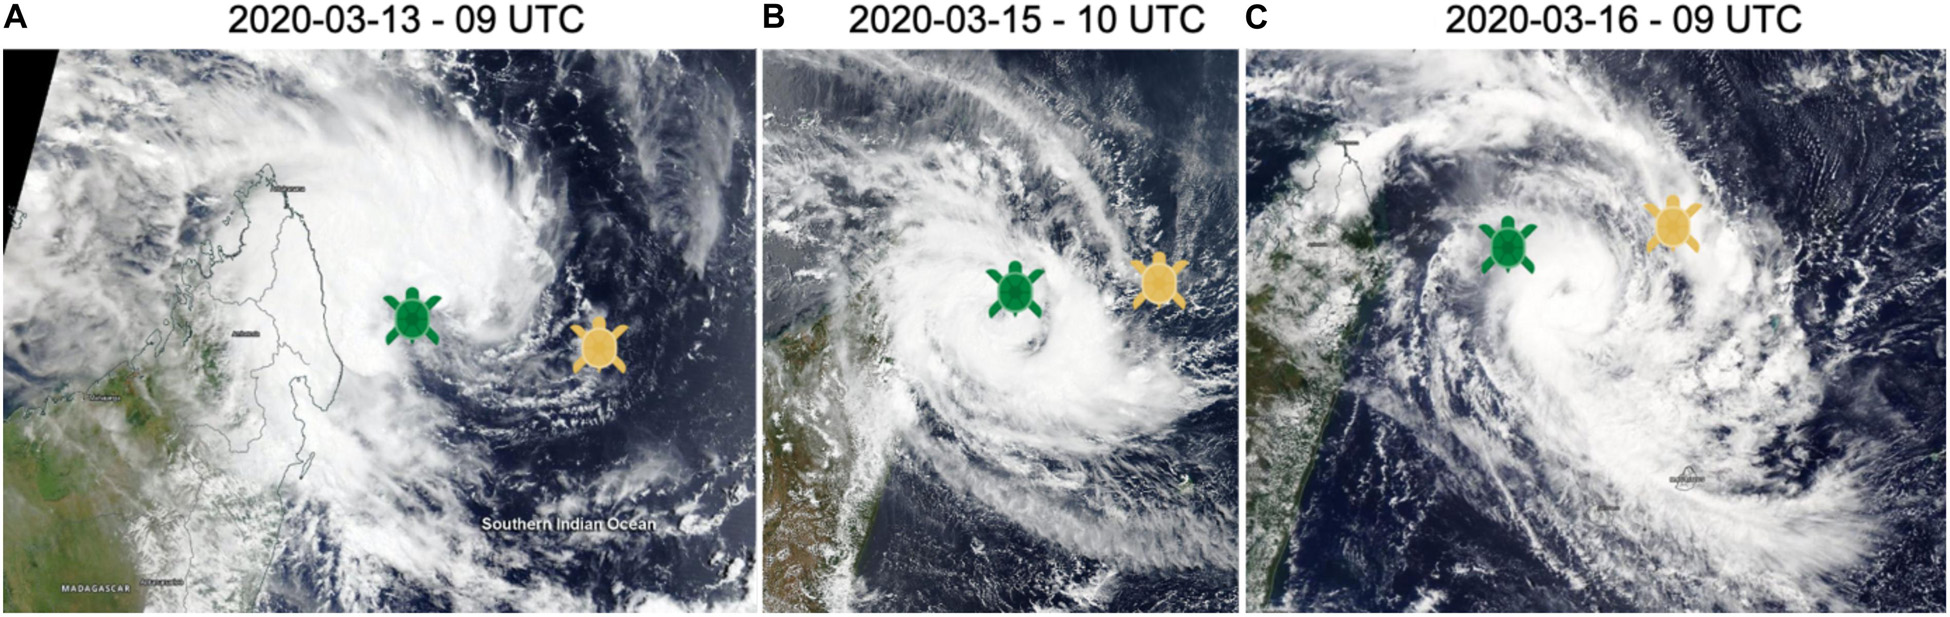 Location of Tom (yellow) and India (green) overlaid on optical images (Modis on Terra & Aqua, Nasa) showing tropical cyclones Herold initial phases in March 2020 (from [Bousquet et al.,2020])